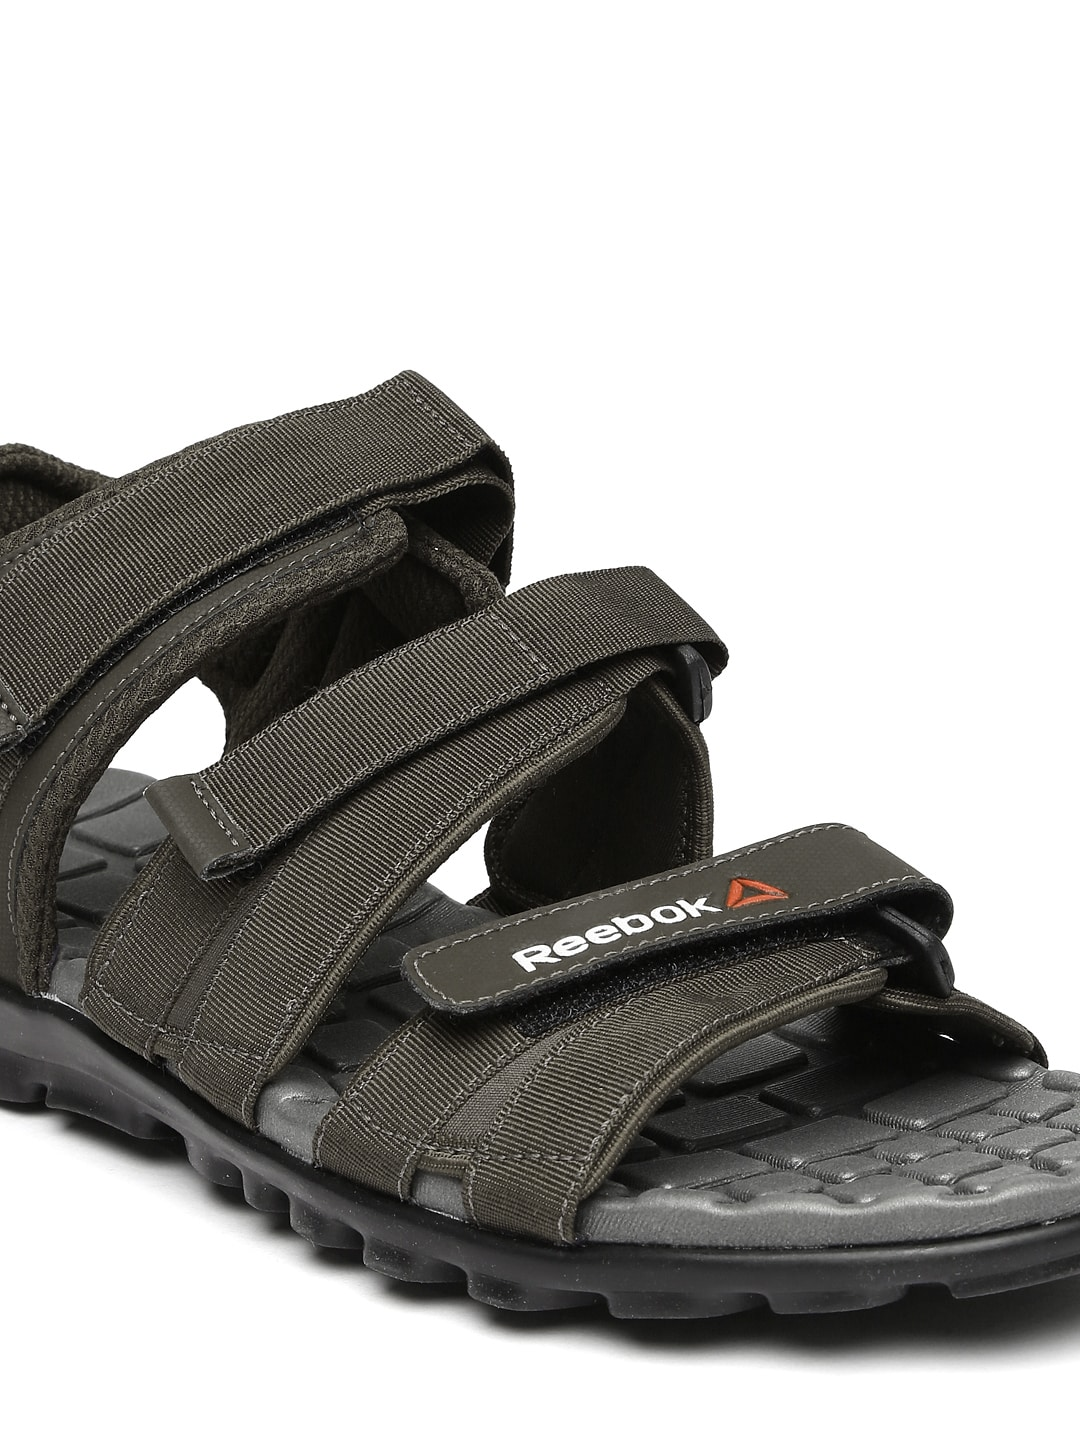 dbb94b455582 reebok sandals for mens sale   OFF64% Discounted